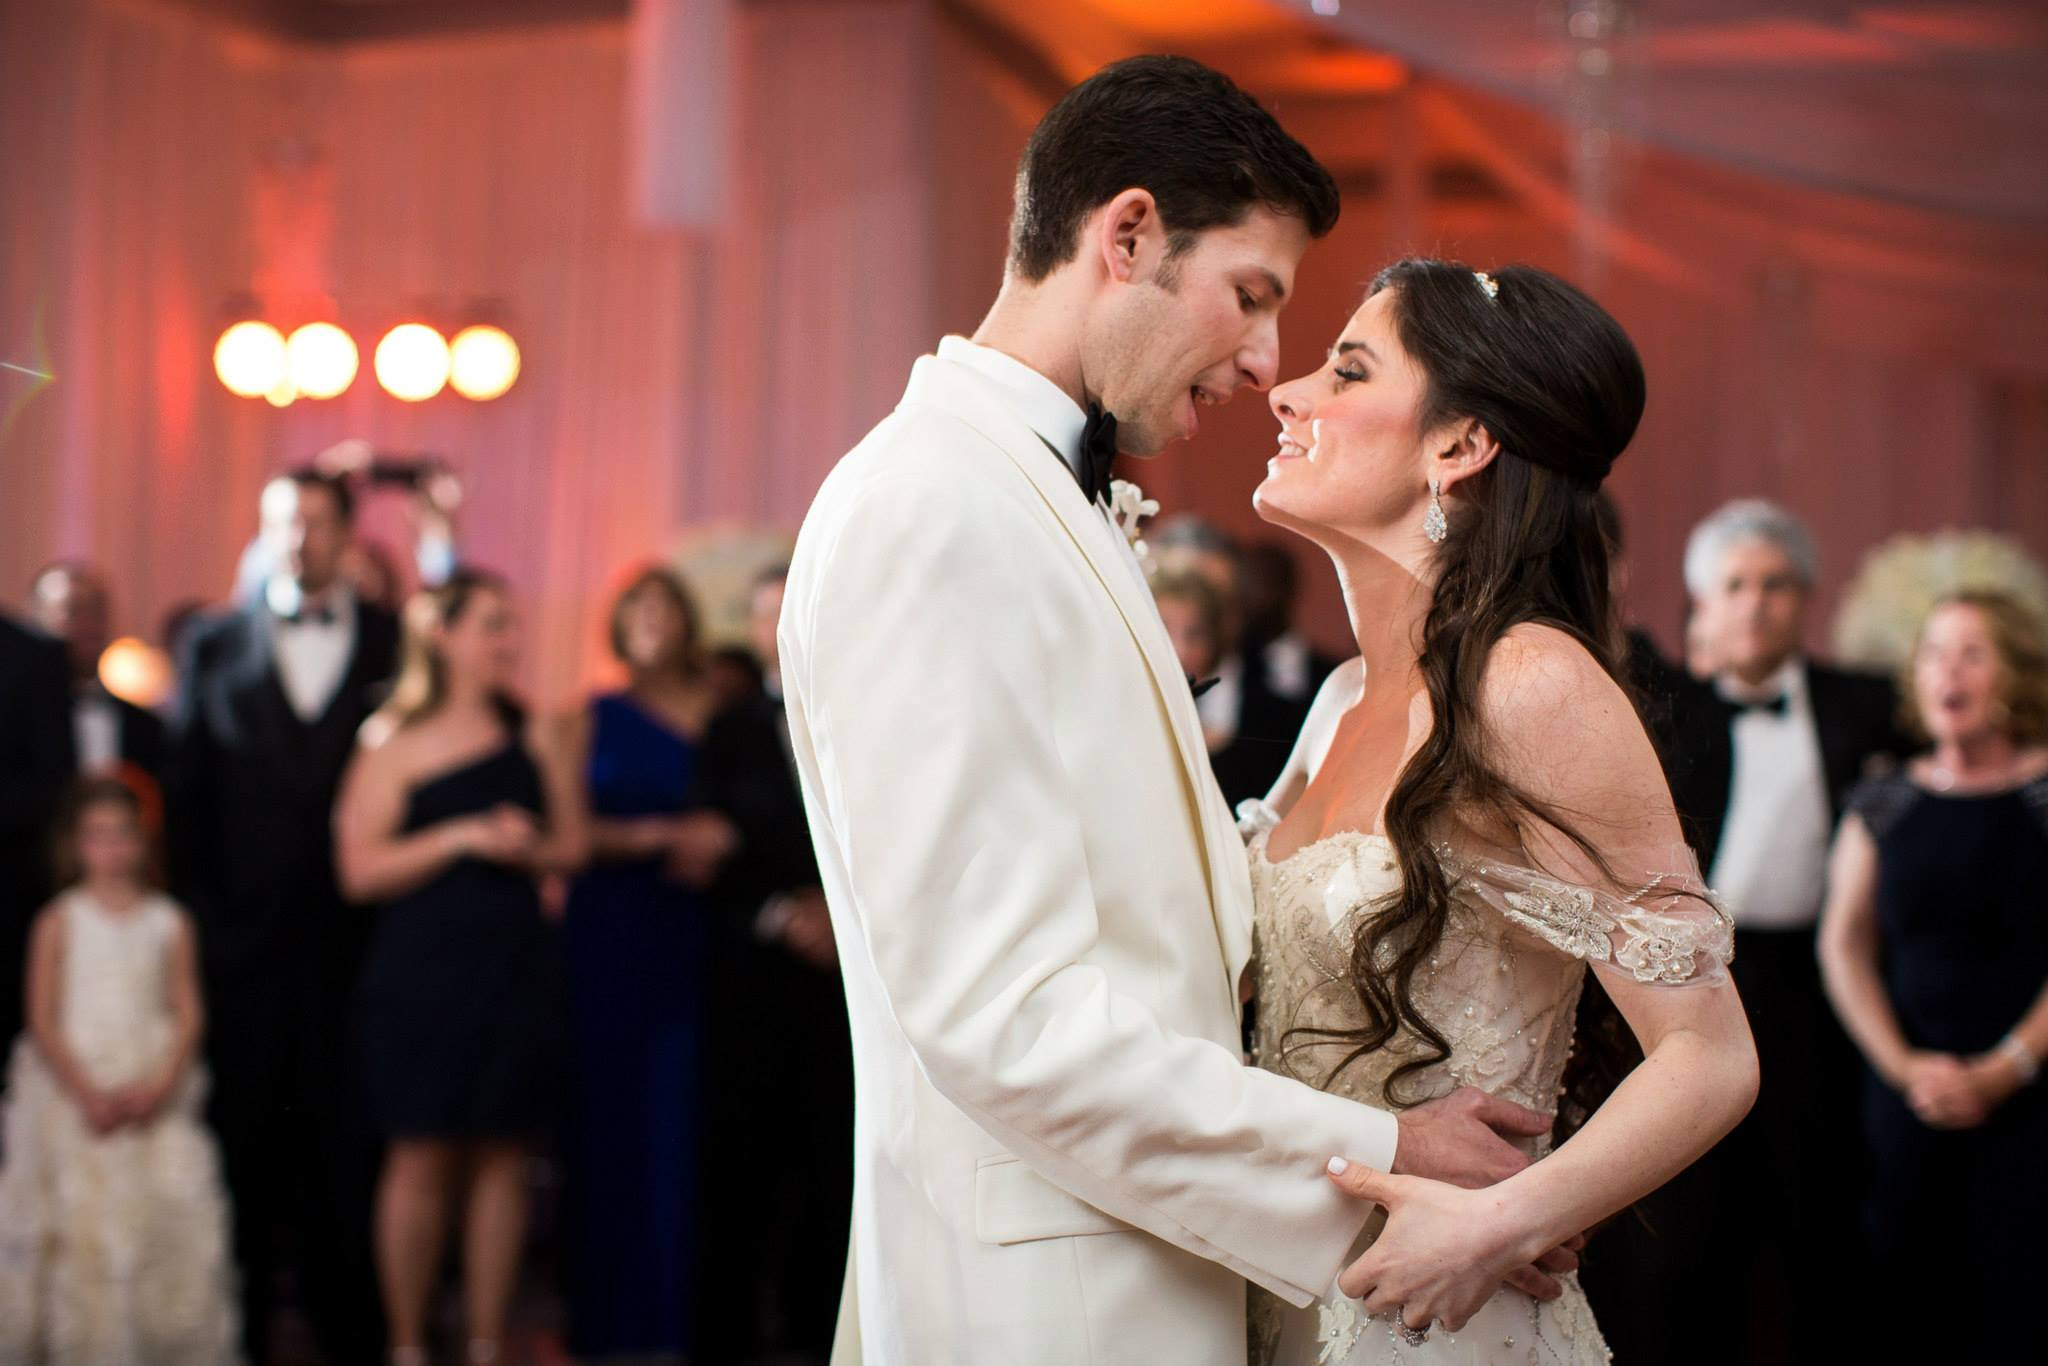 first-dance-boca-raton-the-polo-club-wedding-artist-ben-keys-wed-on-canvas-off-the-shoulder-monique-lhuillier-gown-luxe-wedding-artist-ben-keys-wed-on-canvas